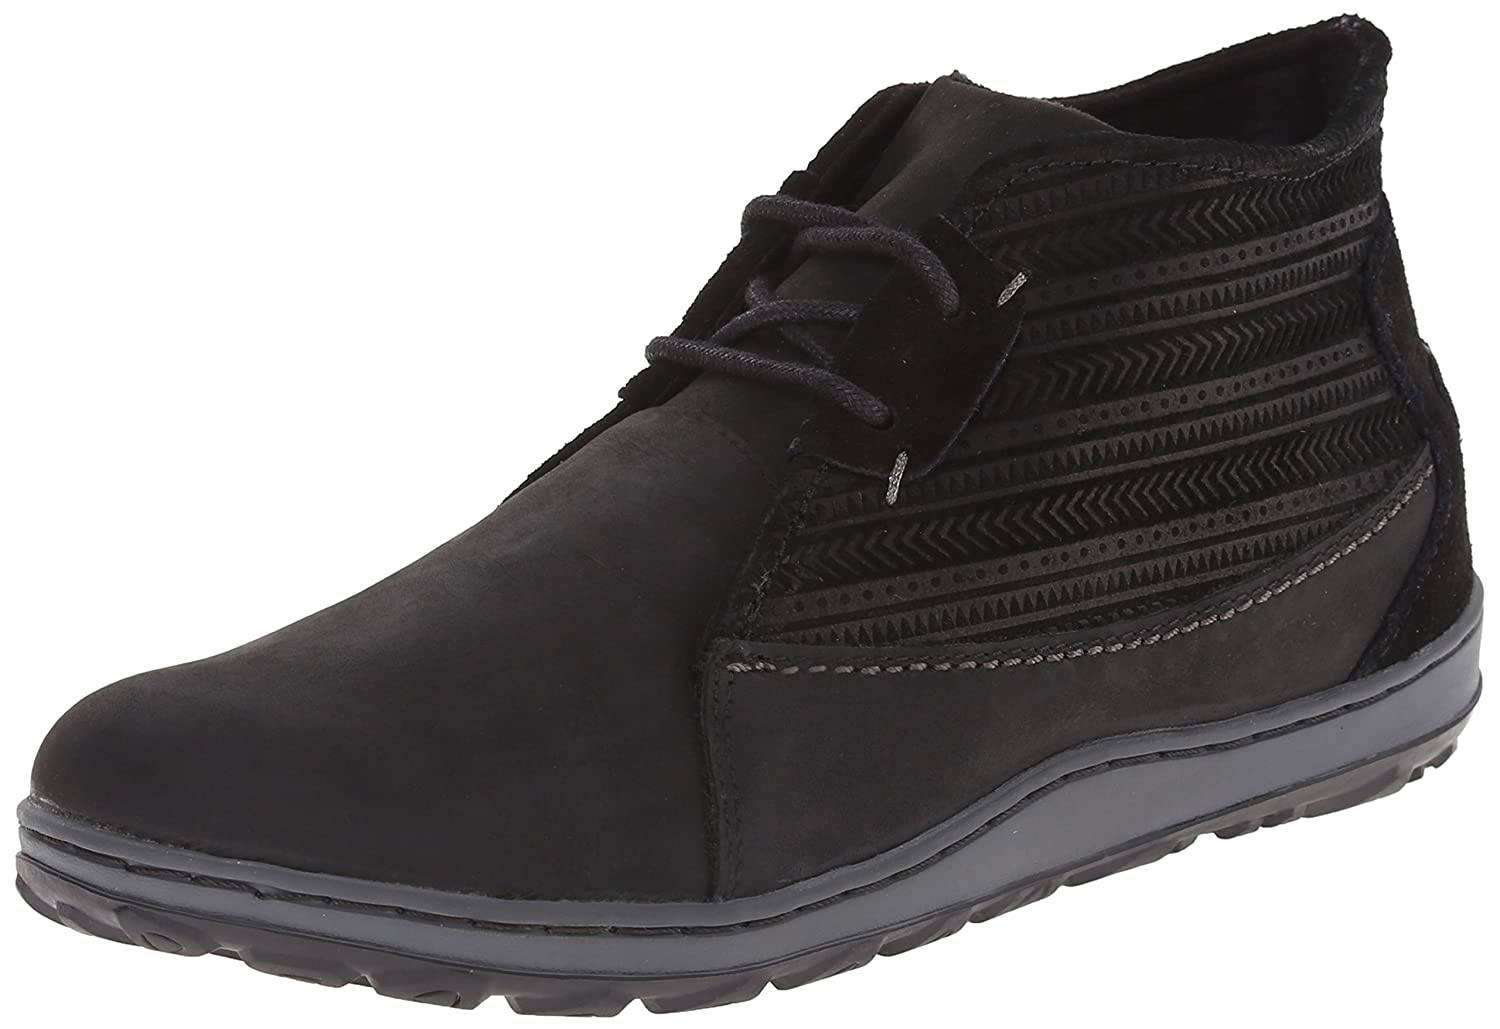 Merrell Women's Ashland Chukka Boot B00RDQJ8IE 7 B(M) US|Black